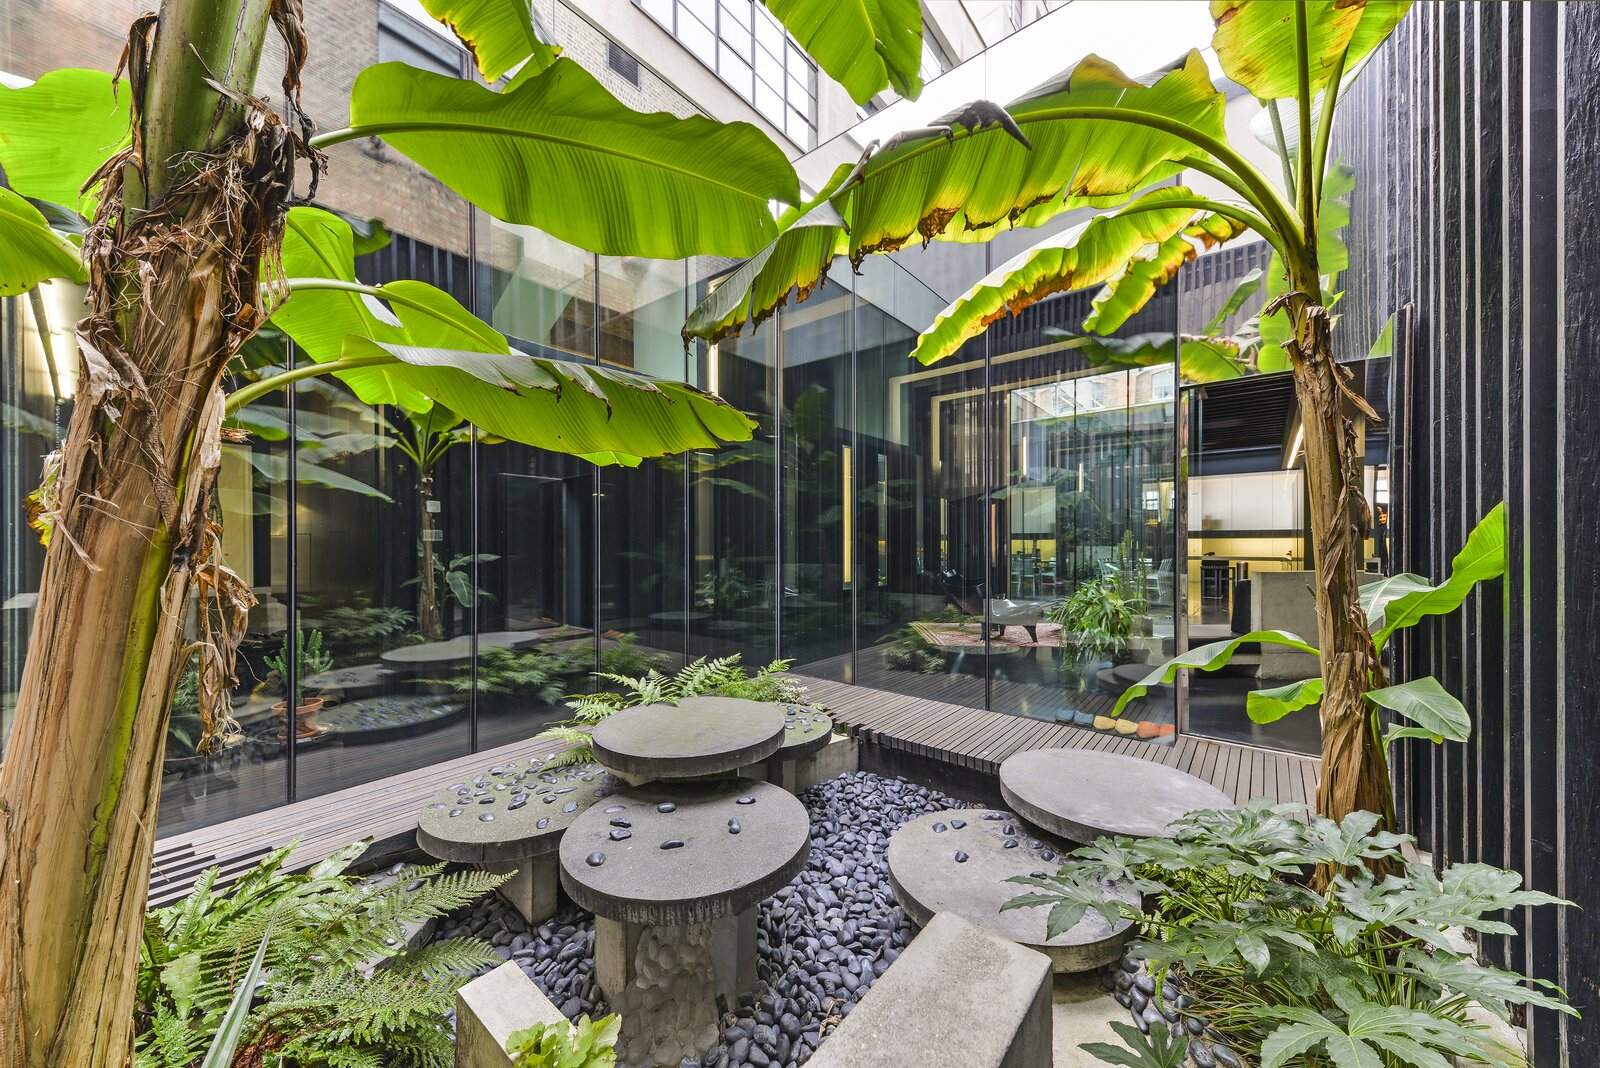 Courtyard in the Lost House by David Adjaye